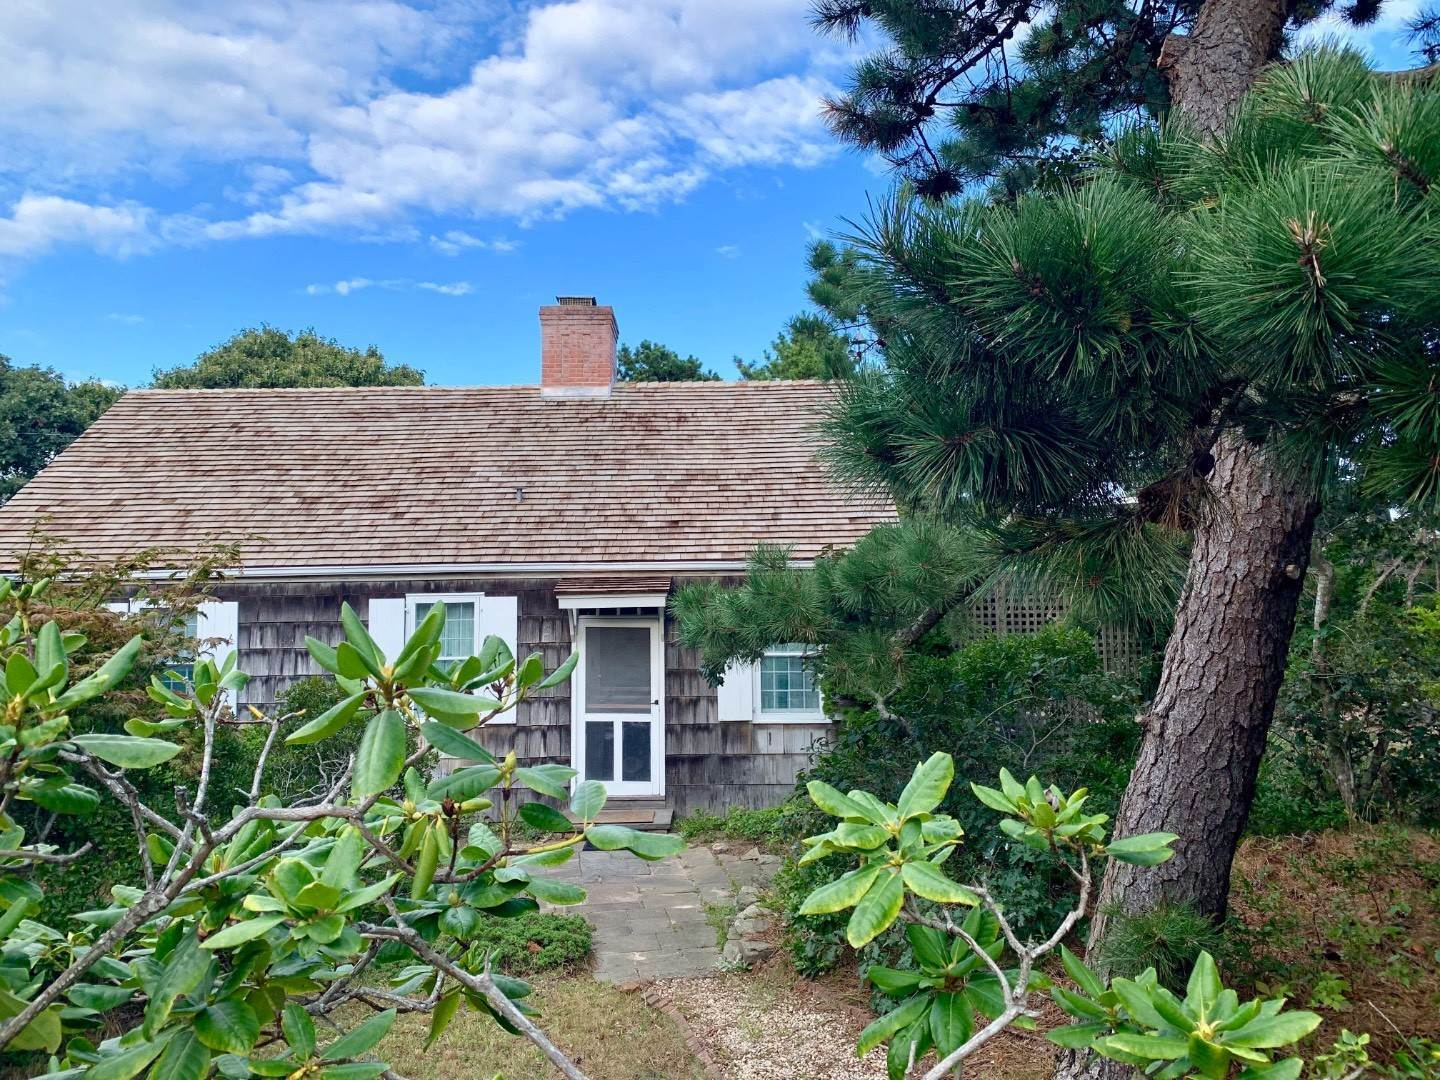 Single Family Home at Amagansett Dunes Cottage - Walk To Beach Amagansett, NY 11930